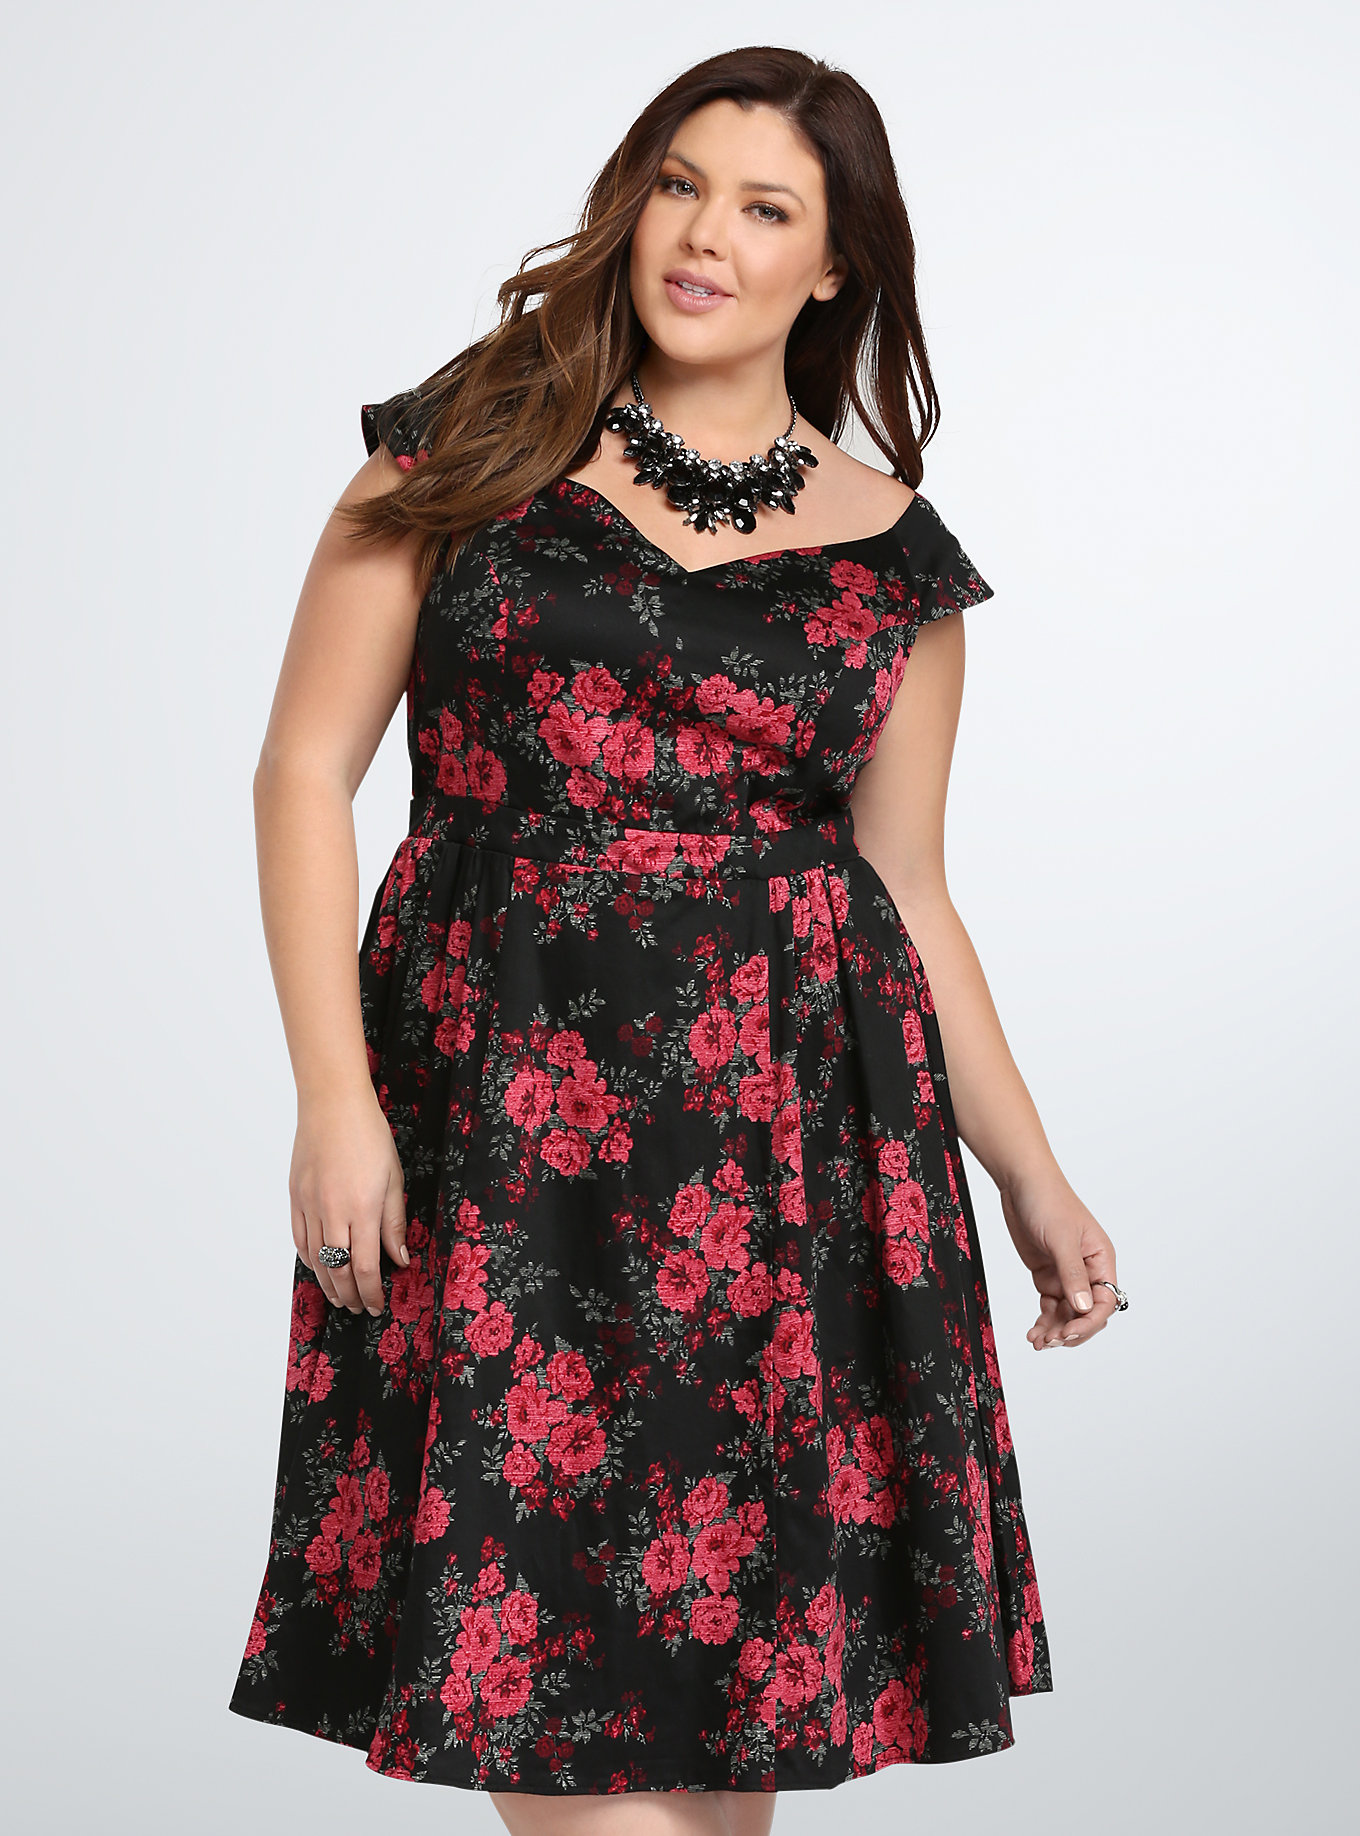 5 Essential Tips for Plus-Size Evening Gown Shopping // www.brokeandchic.com